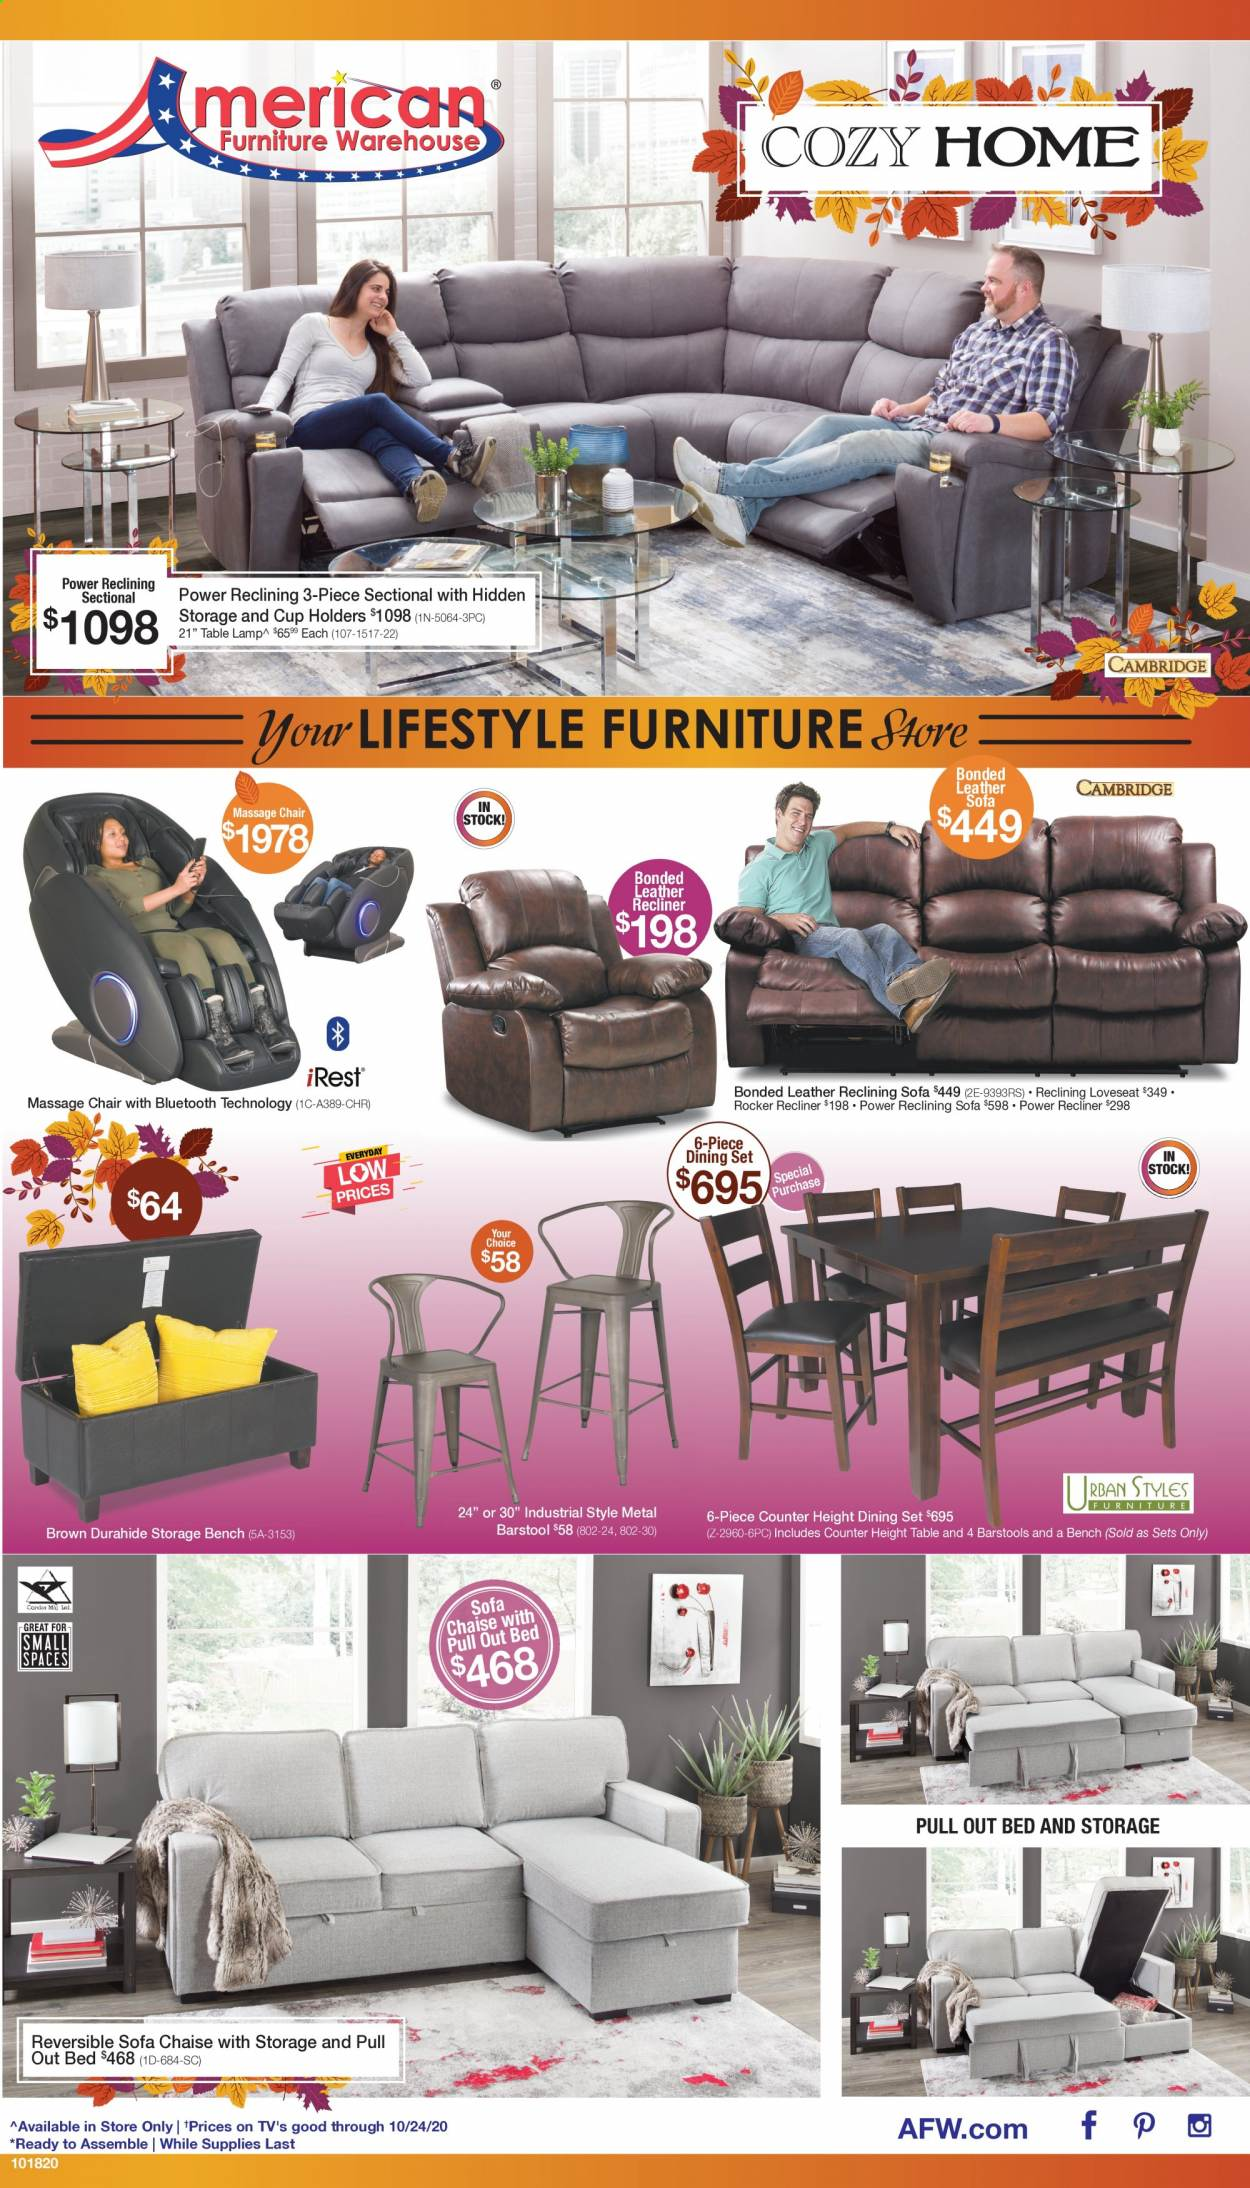 American Furniture Warehouse Flyer - 10.18.2020 - 10.24.2020 - Sales products - 3-piece sectional, bed, Bench, dining set, Furniture, lamp, leather sofa, loveseat, sofa, storage bench, chair, chaise, rocker, table lamp. Page 1.